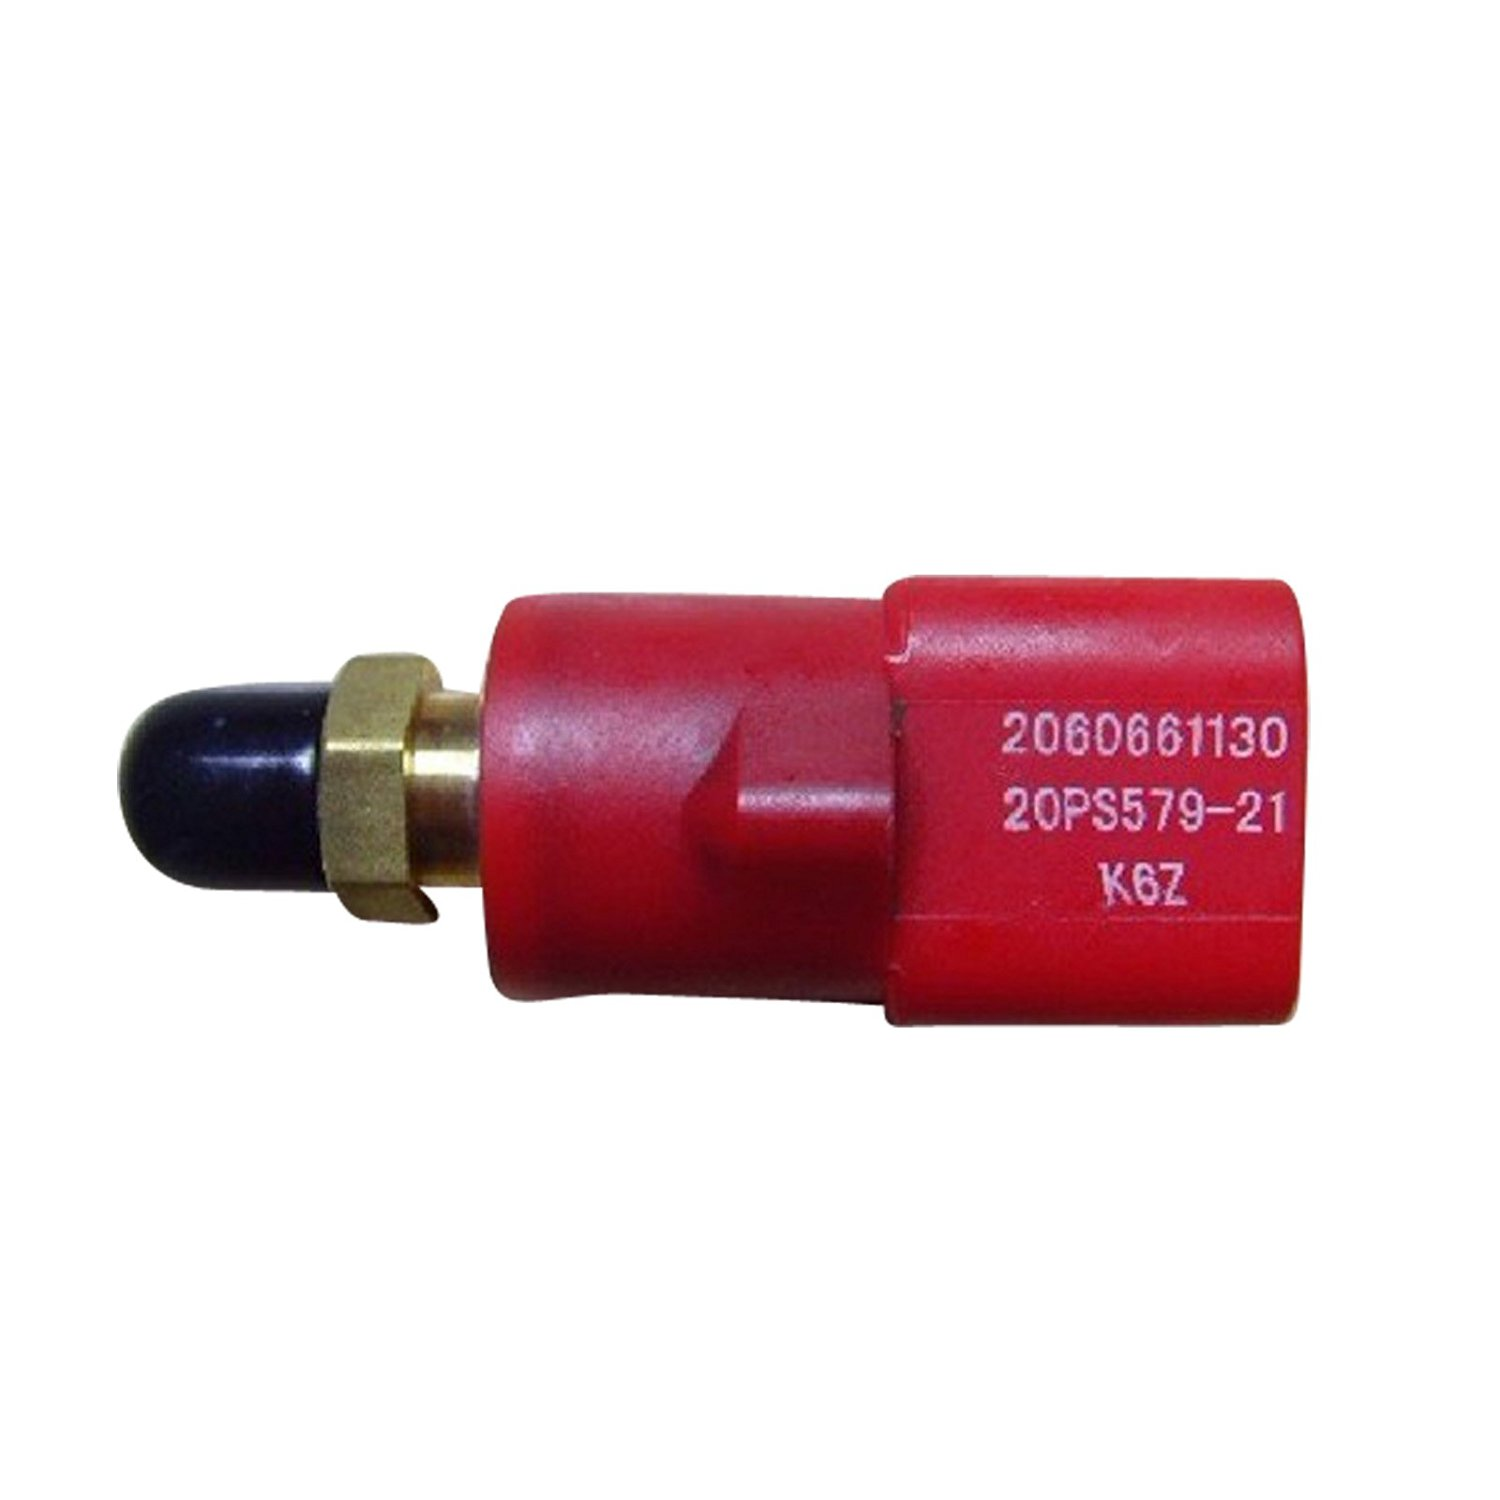 SINOCMP Excavator pressure Sensor 20PS579-21 for Komatsu PC200-8